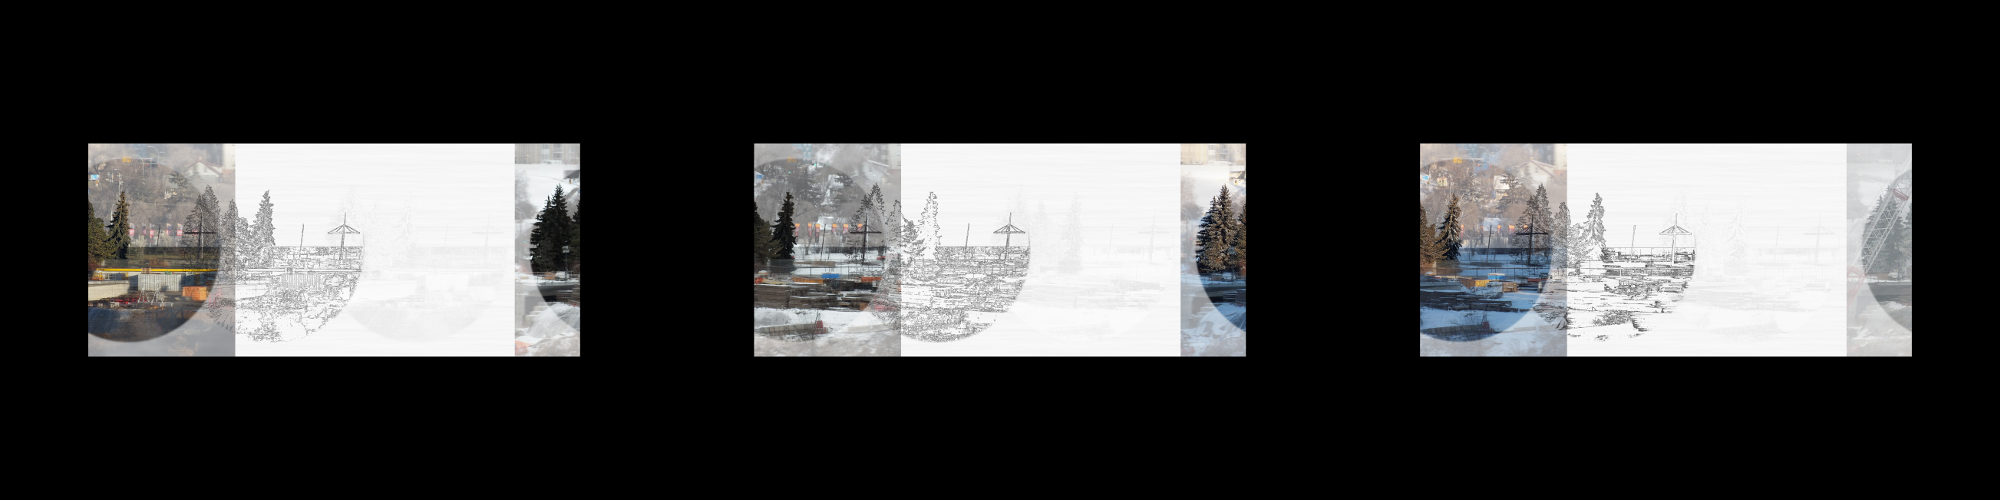 Untitled - Trees & Burial Grounds Time-breeze Reverb Blanket of Snow DA